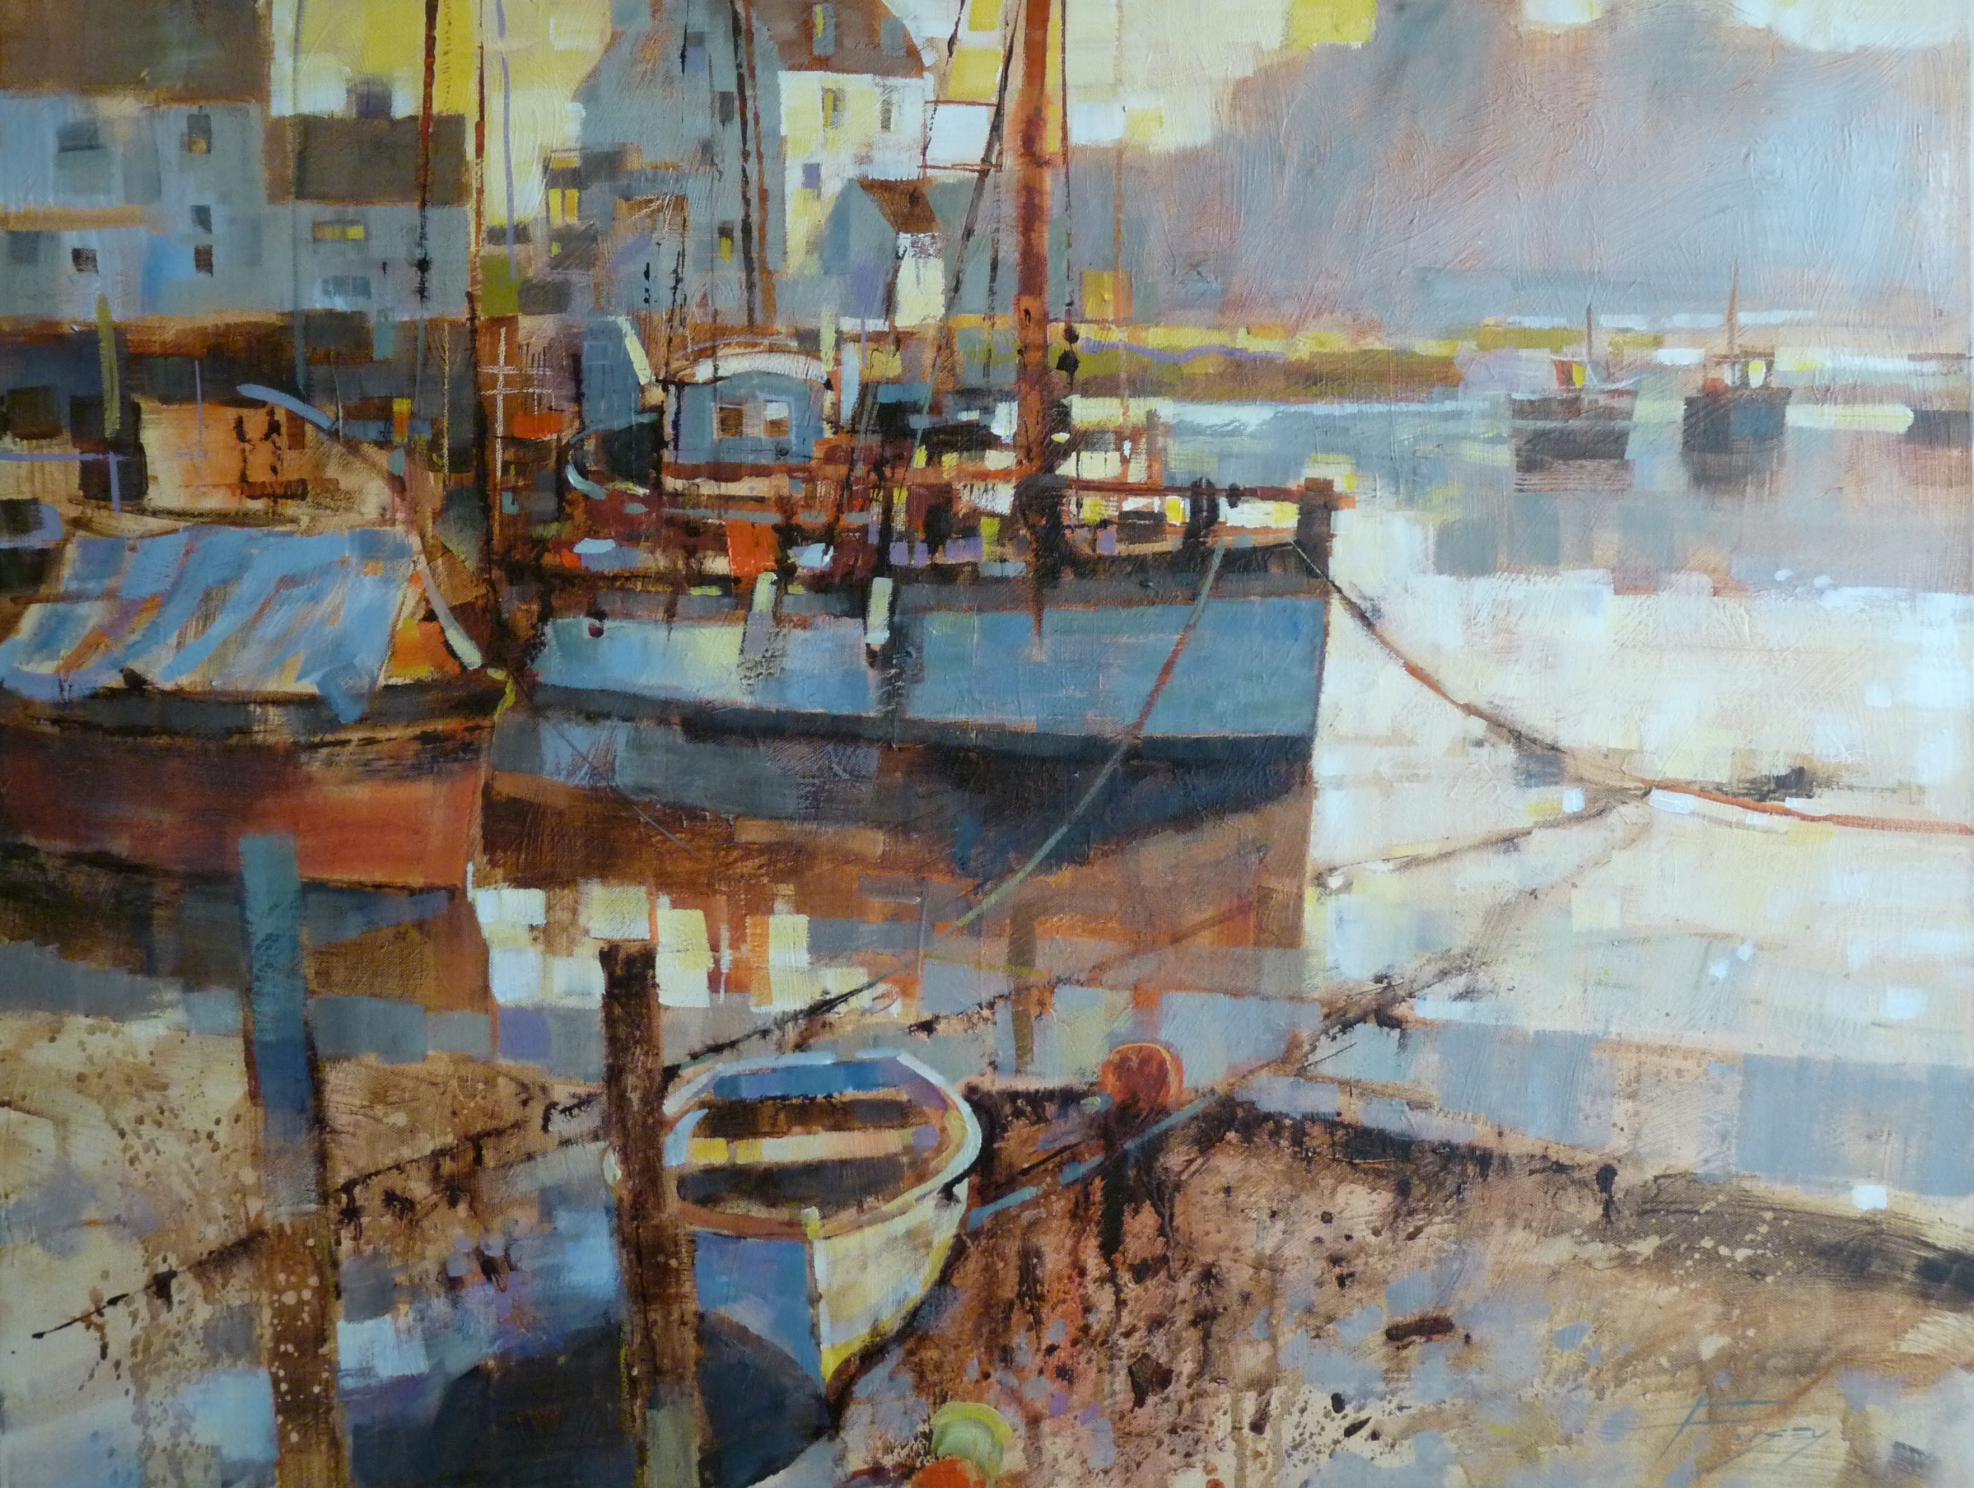 Woodbridge, mist in the morning by Chris Forsey